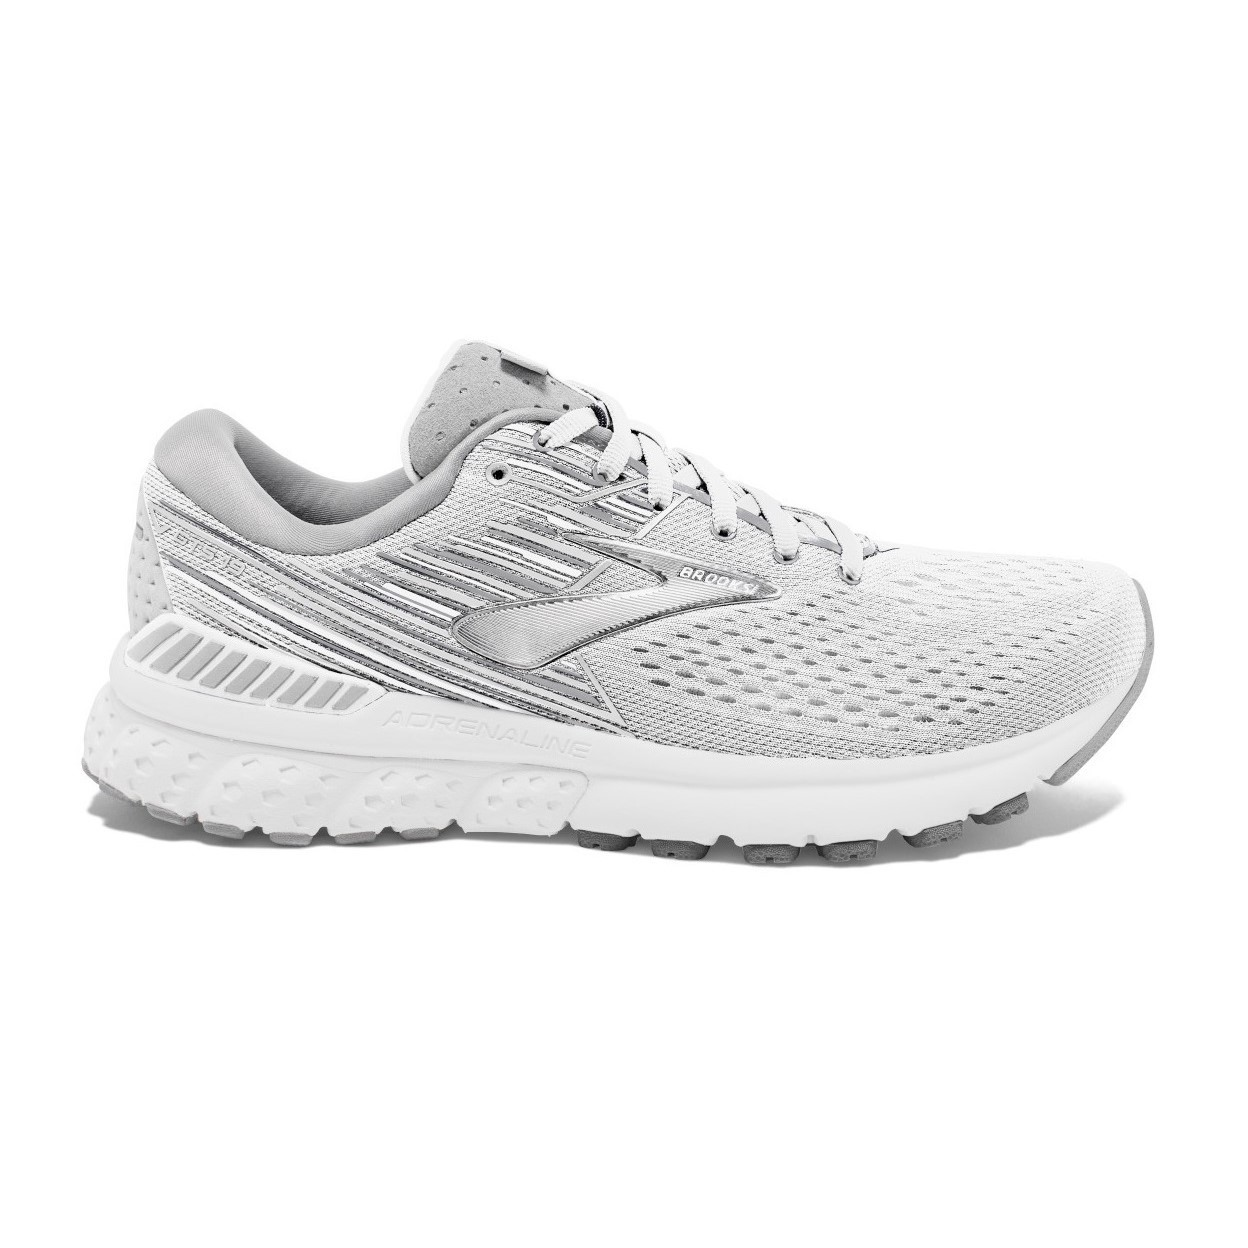 fb5073fcb1e Brooks Adrenaline GTS 19 - Womens Running Shoes - White Grey ...